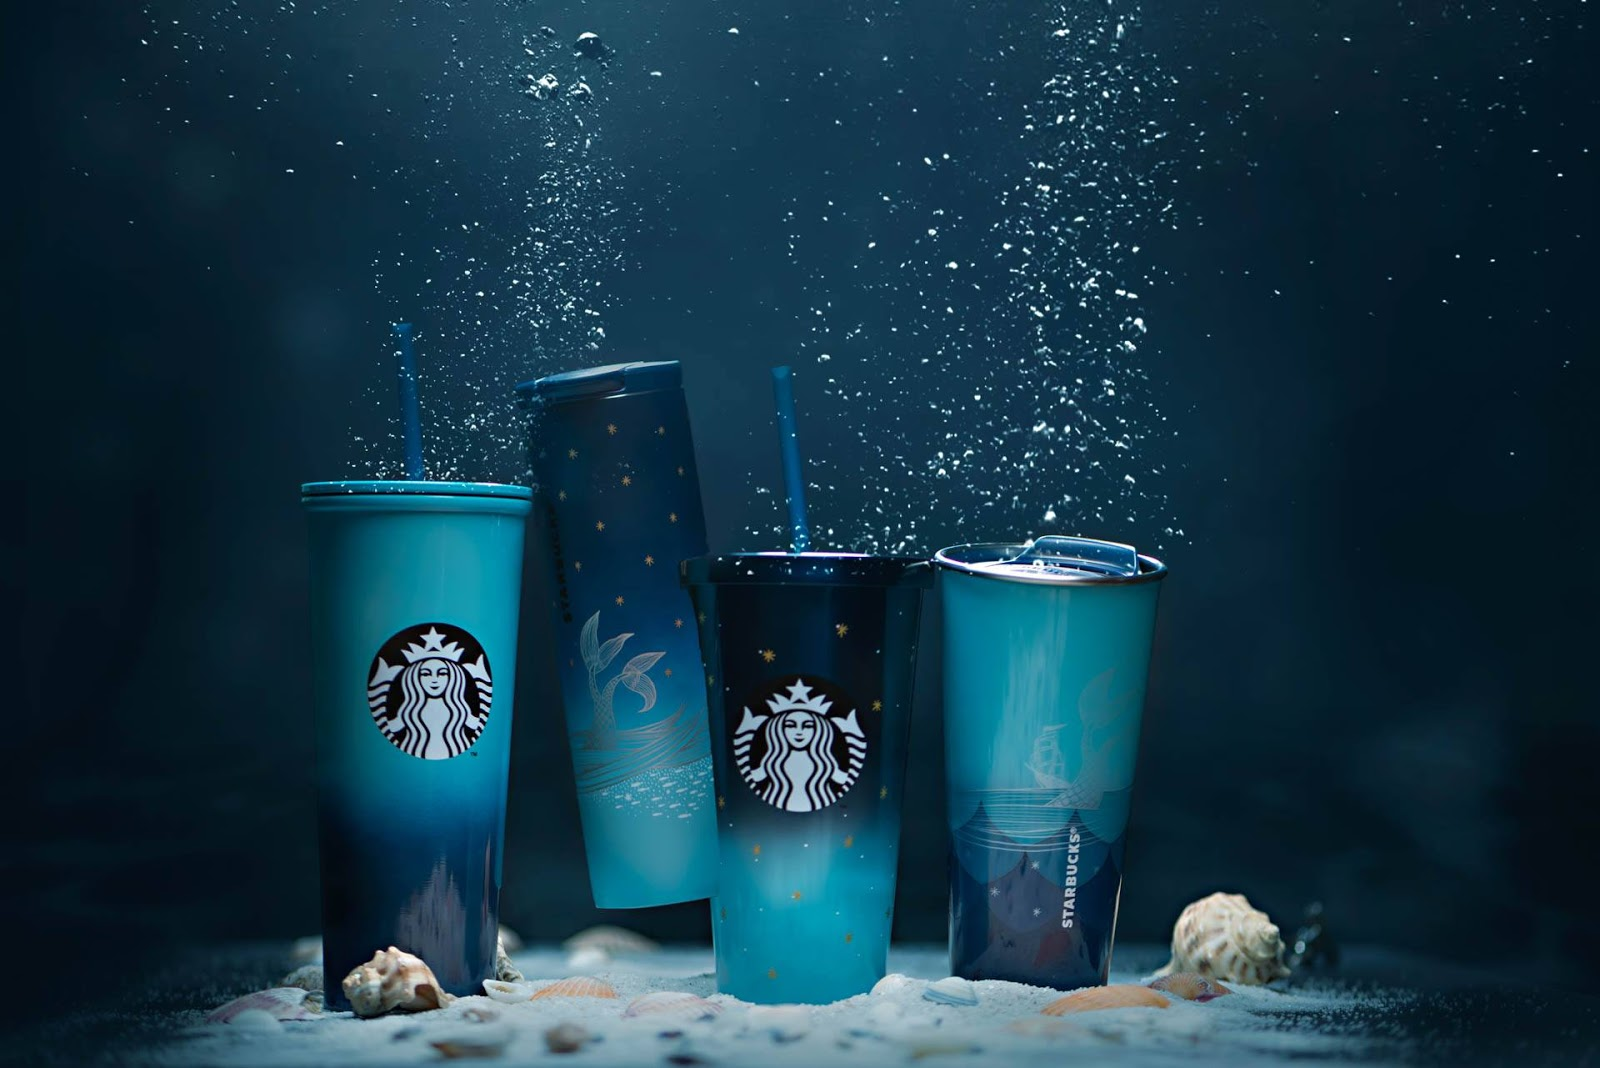 Starbucks Philippines Celestial Siren Collection Jexx Hingo